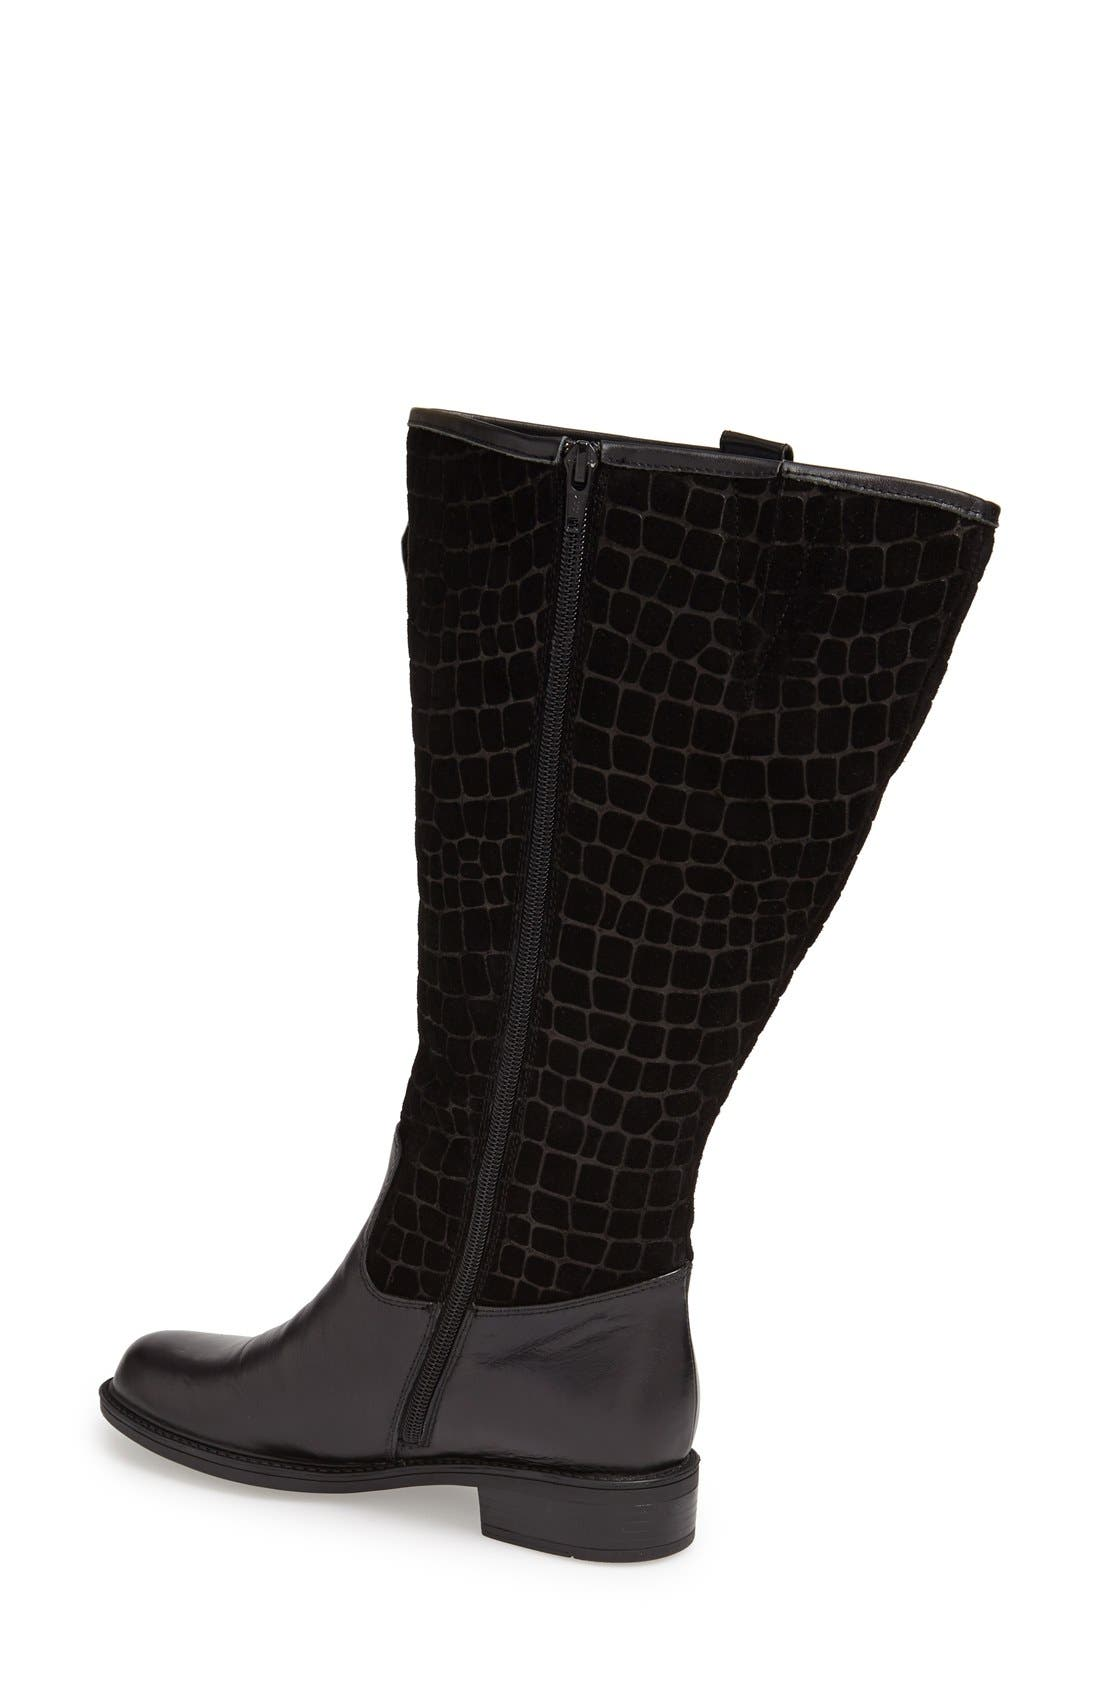 'Best' Calfskin Leather & Suede Boot,                             Alternate thumbnail 17, color,